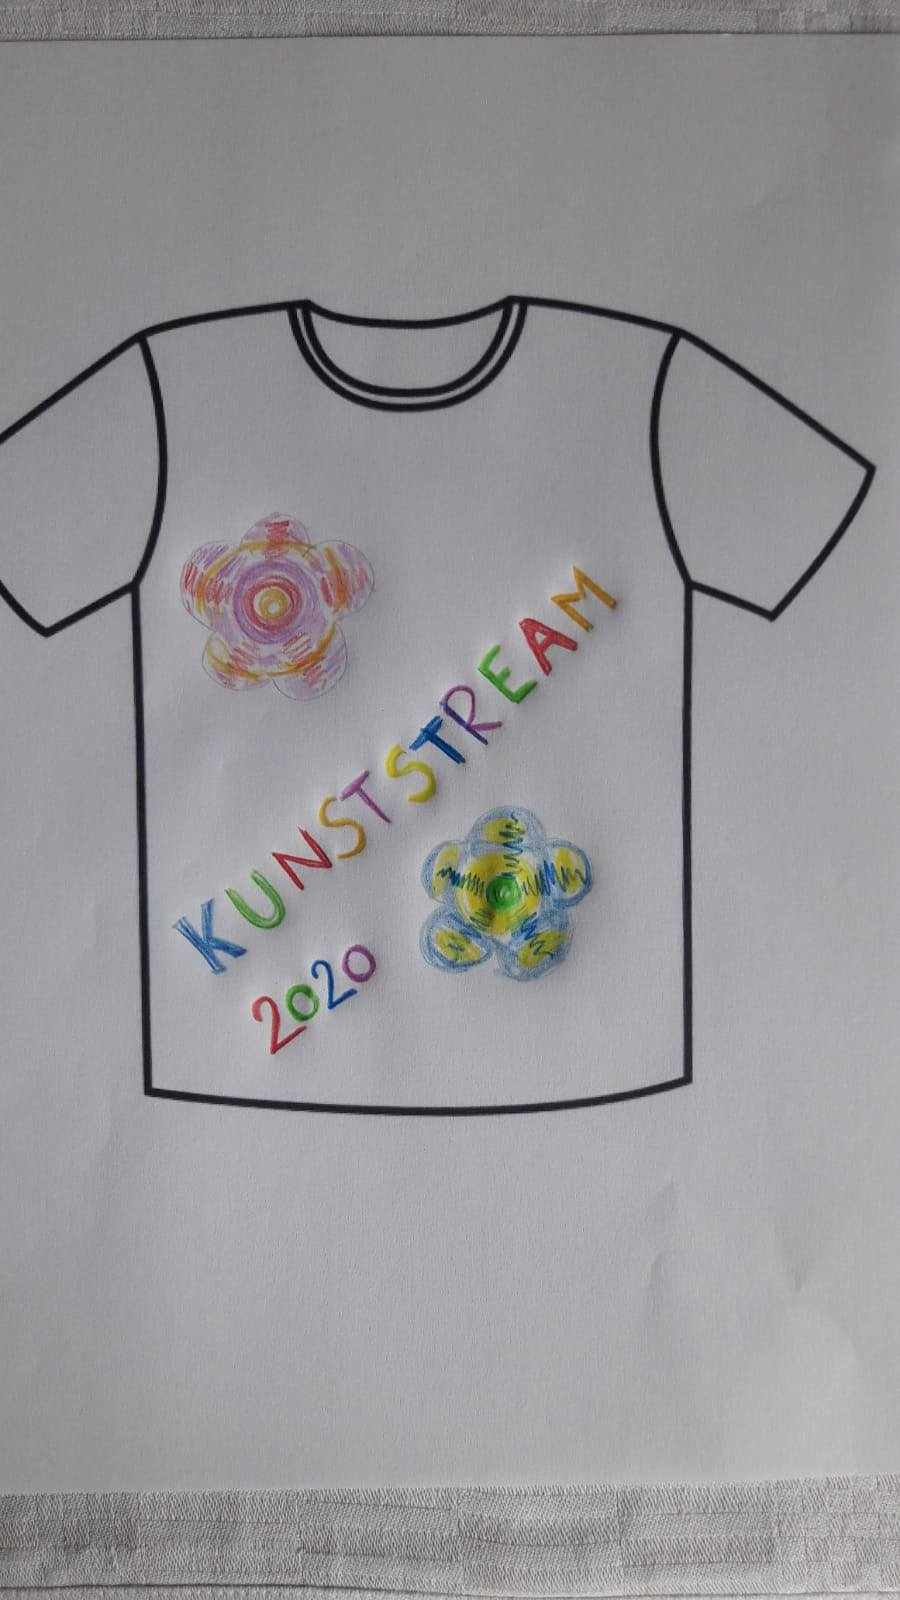 Kinder Shirt Design Beispiel